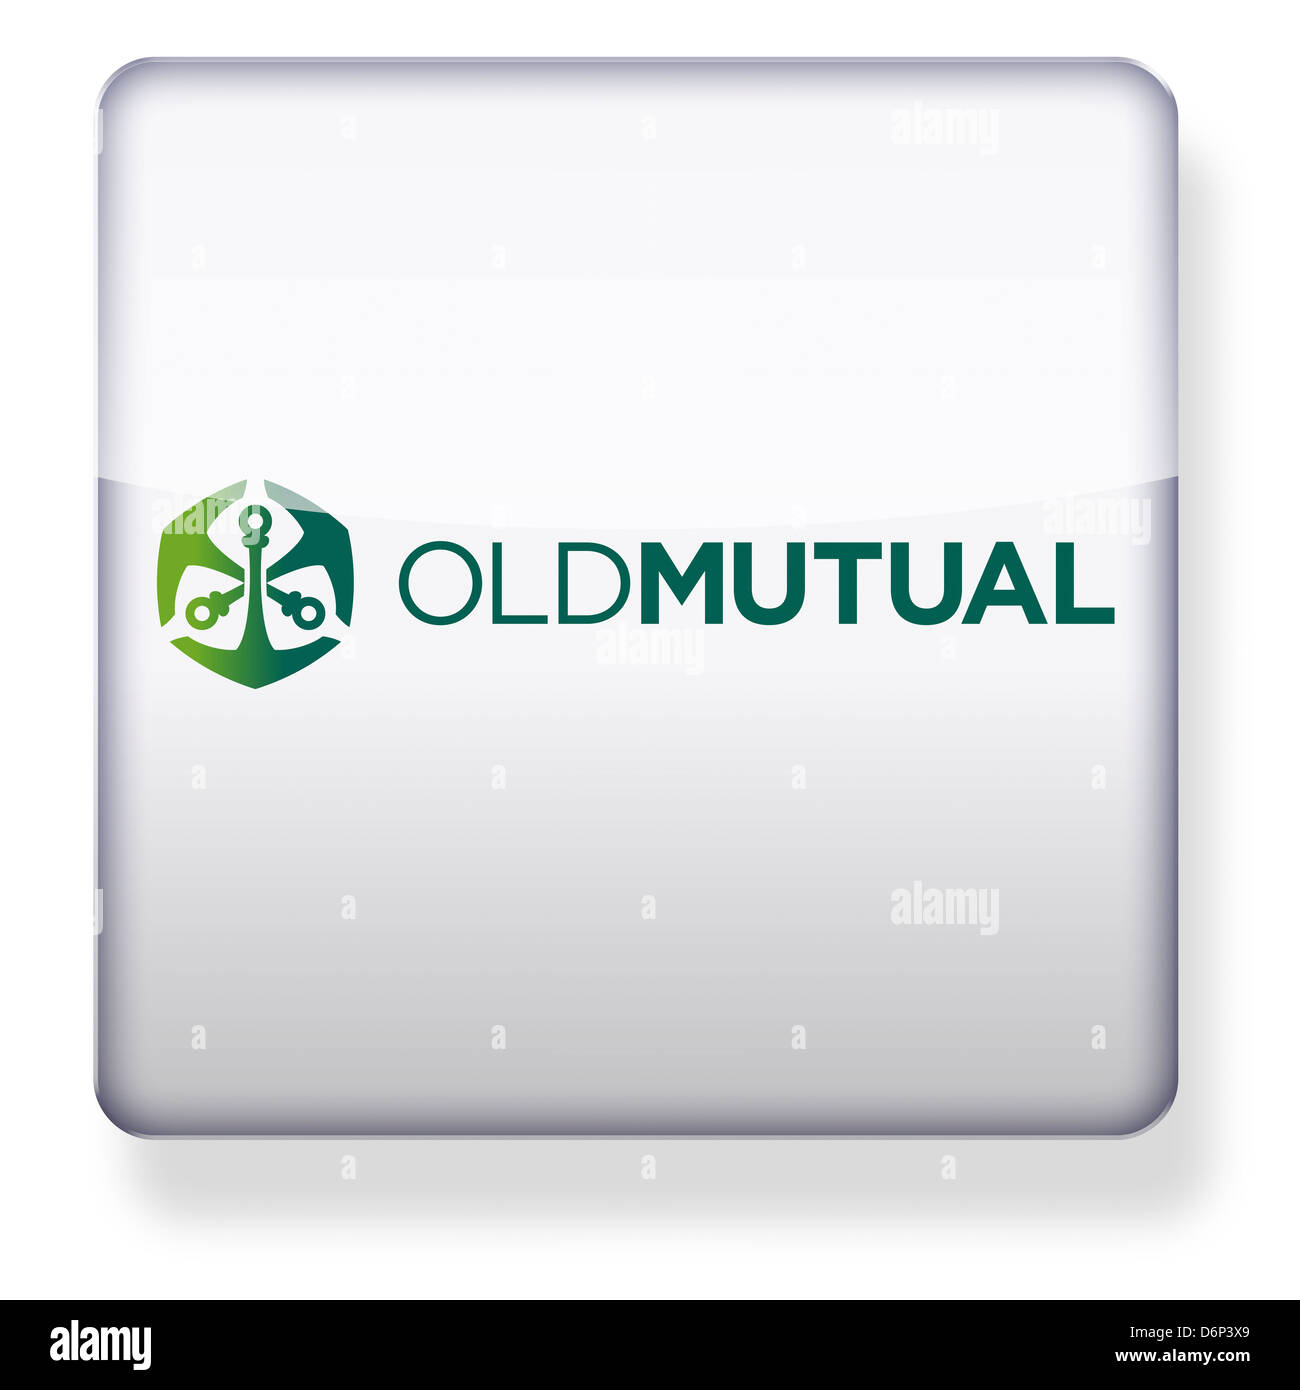 Old Mutual Insurance logo as an app icon. Clipping path included. - Stock Image